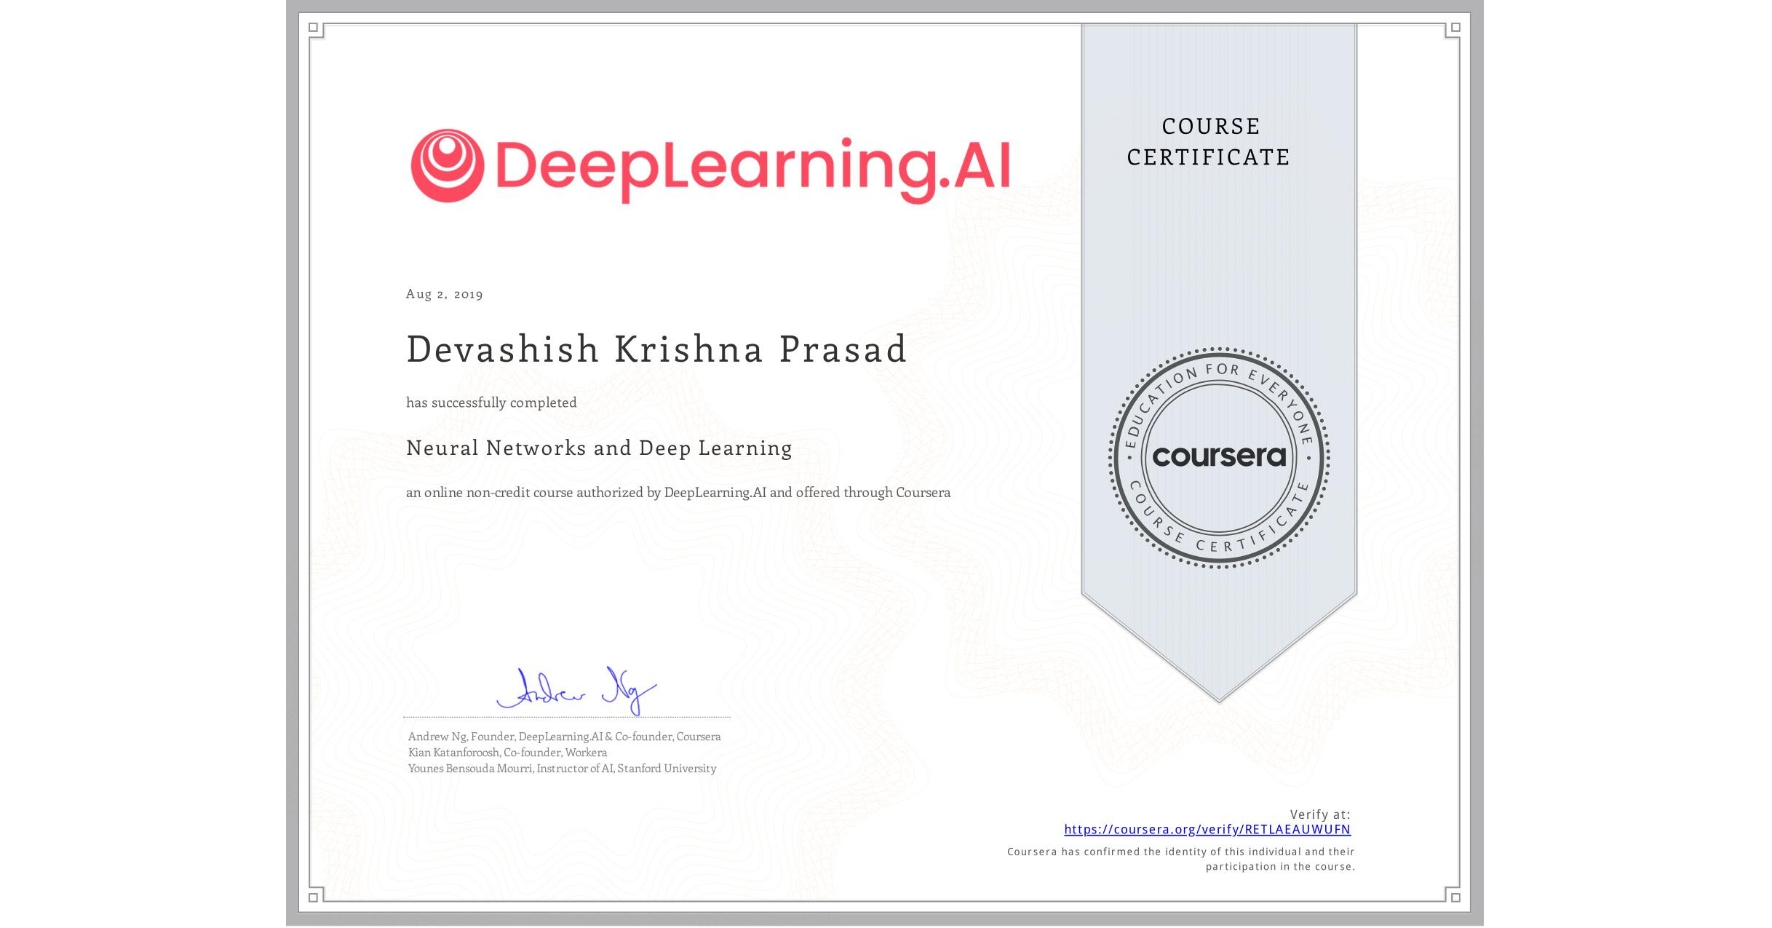 View certificate for Devashish Krishna Prasad, Neural Networks and Deep Learning, an online non-credit course authorized by DeepLearning.AI and offered through Coursera